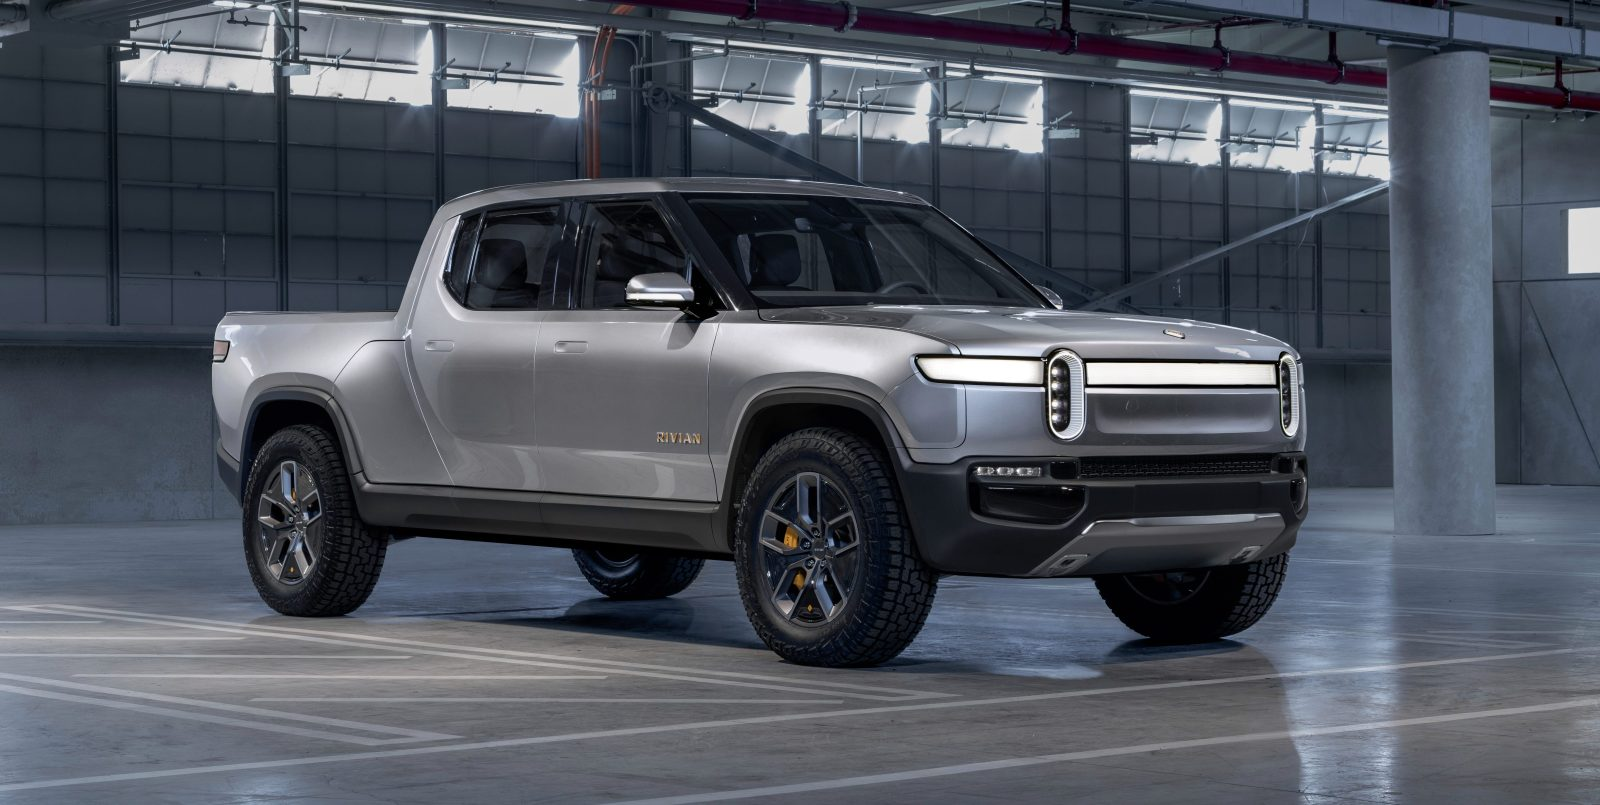 Electric Pickup Truck Startup Rivian Confirms 700 Million Round Of Funding Led By